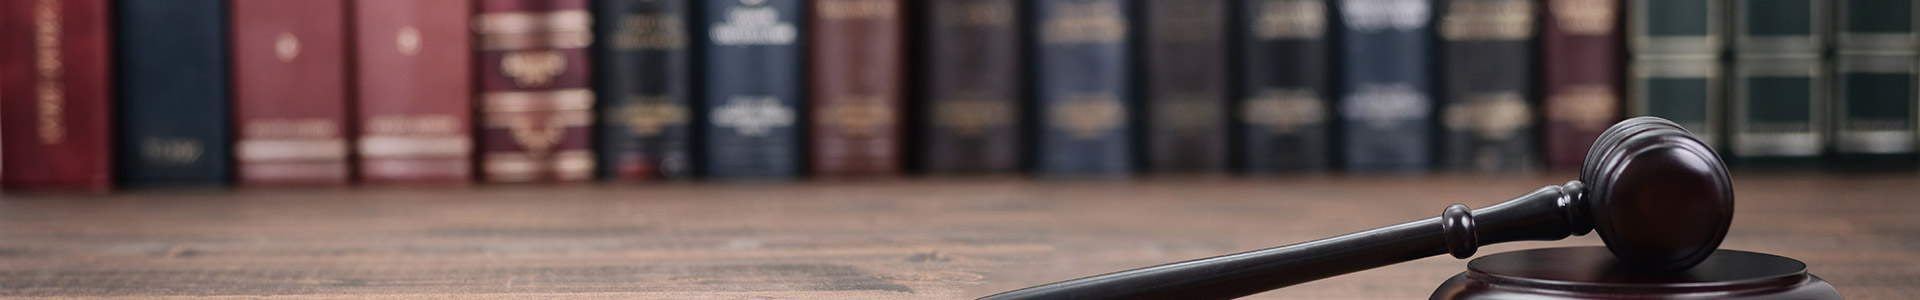 legal books on a shelf with judges gavel in front of them